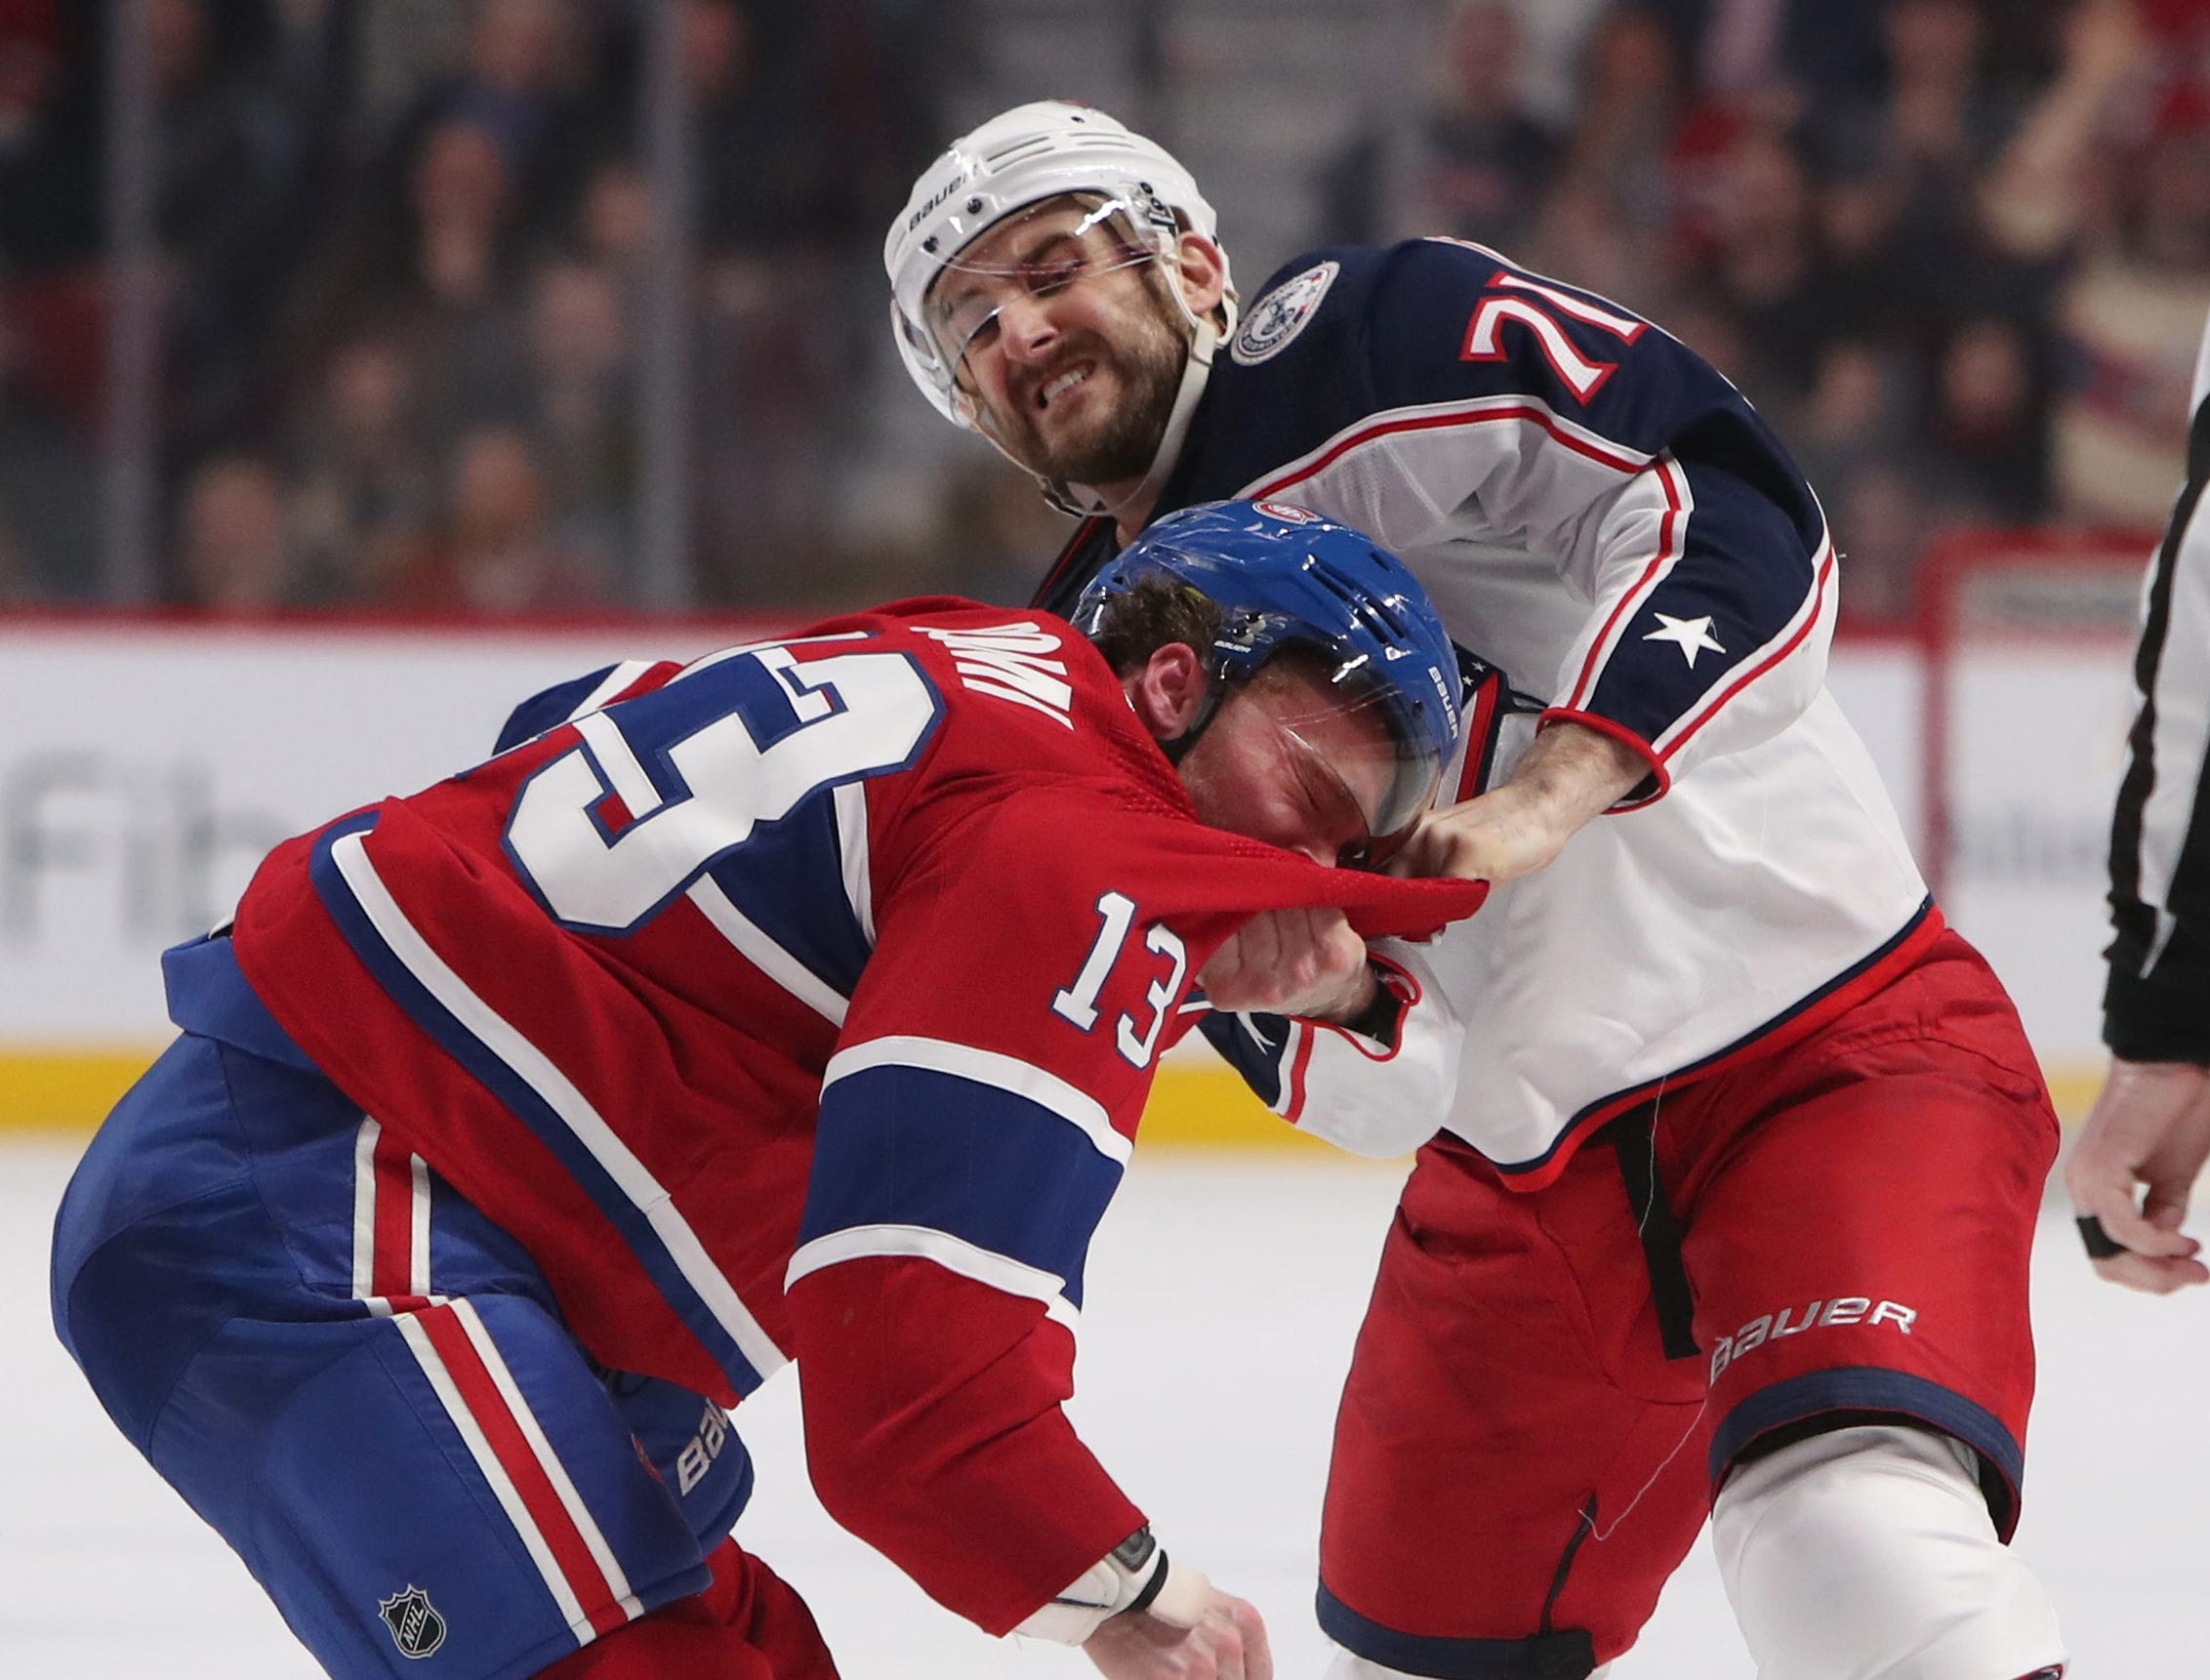 Feb. 19: Montreal Canadiens' Max Domi vs. Columbus Blue Jackets' Nick Foligno